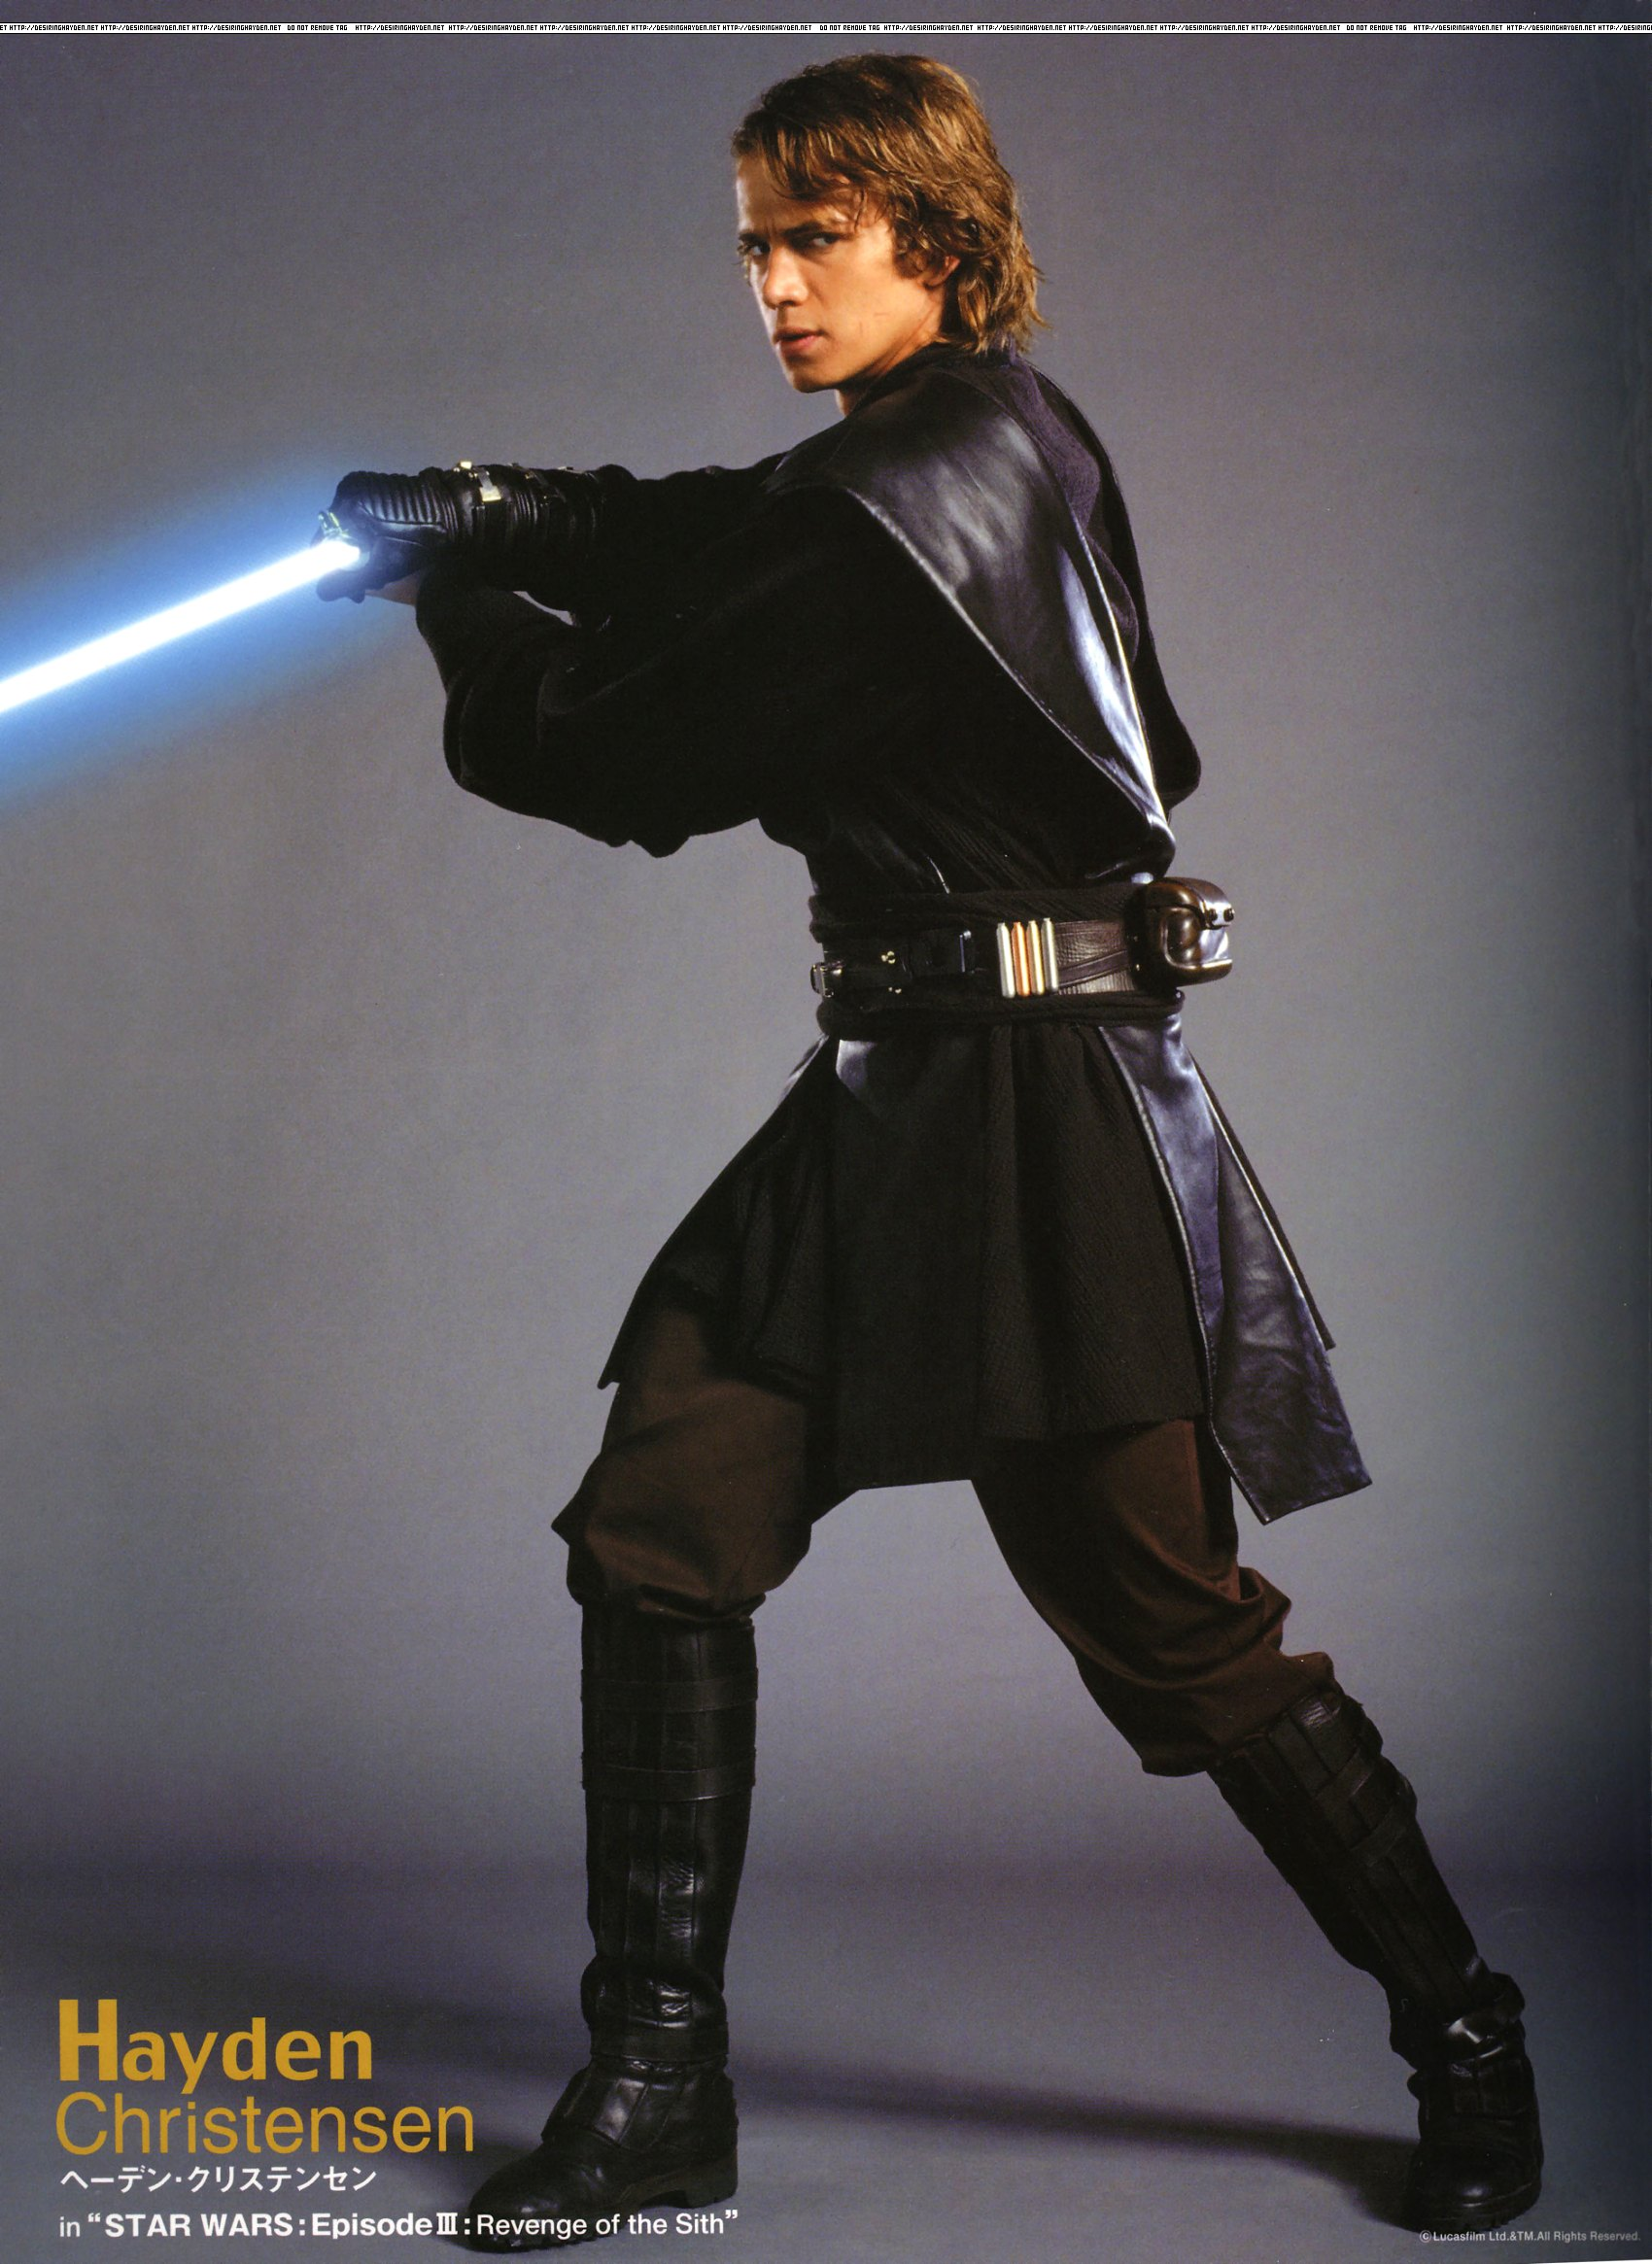 Hayden christensen as anakin sywalker images attack of the clones ep - Hayden Christensen As Anakin Sywalker Images Episode Iii